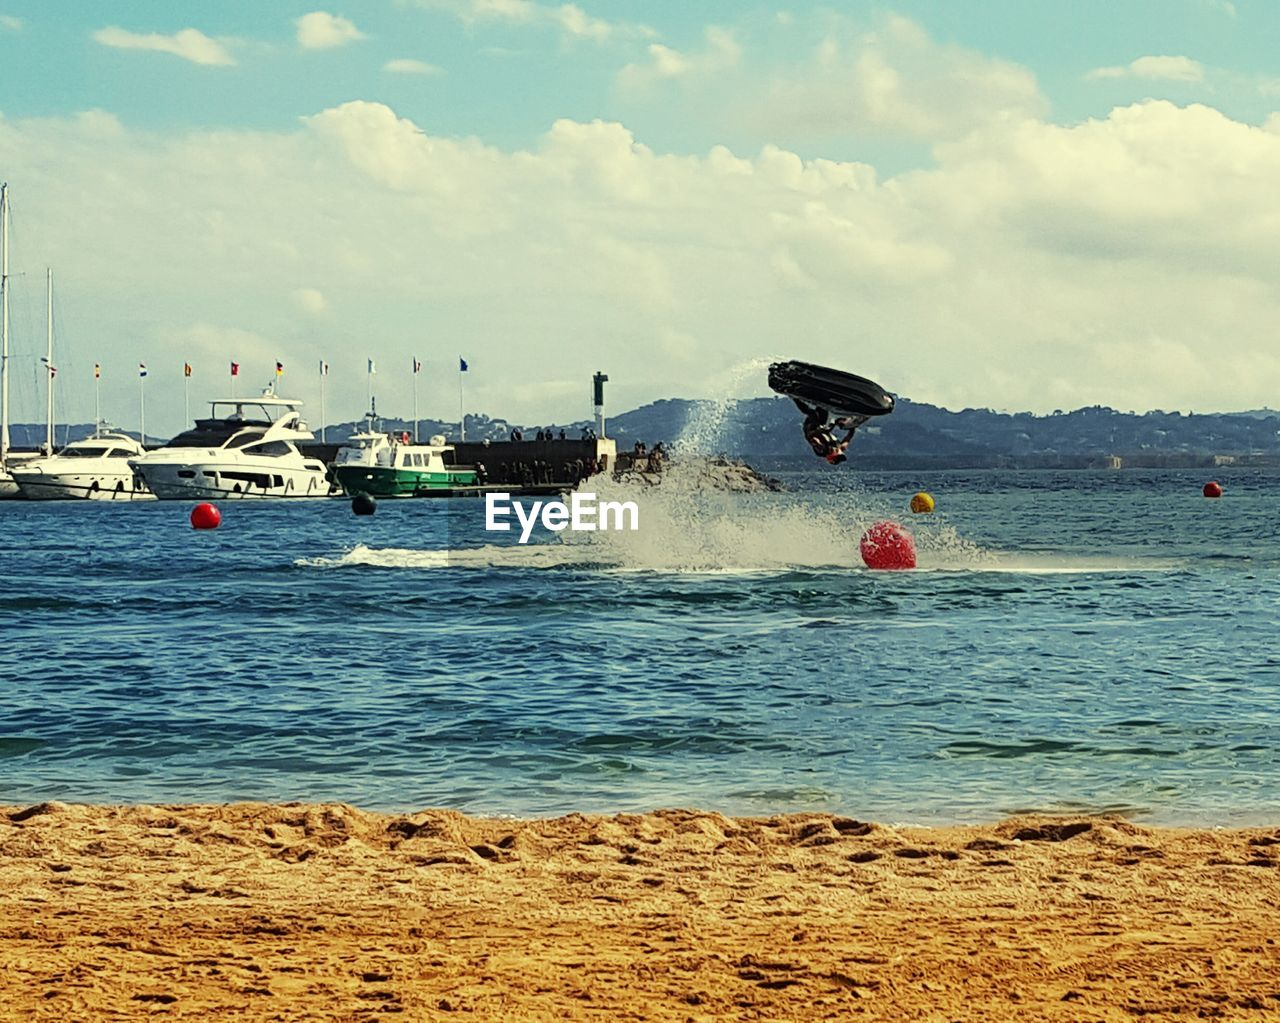 water, sea, cloud - sky, motion, sky, real people, day, leisure activity, speed, outdoors, nature, jet boat, vacations, adventure, wave, beach, one person, lifestyles, men, nautical vessel, beauty in nature, people